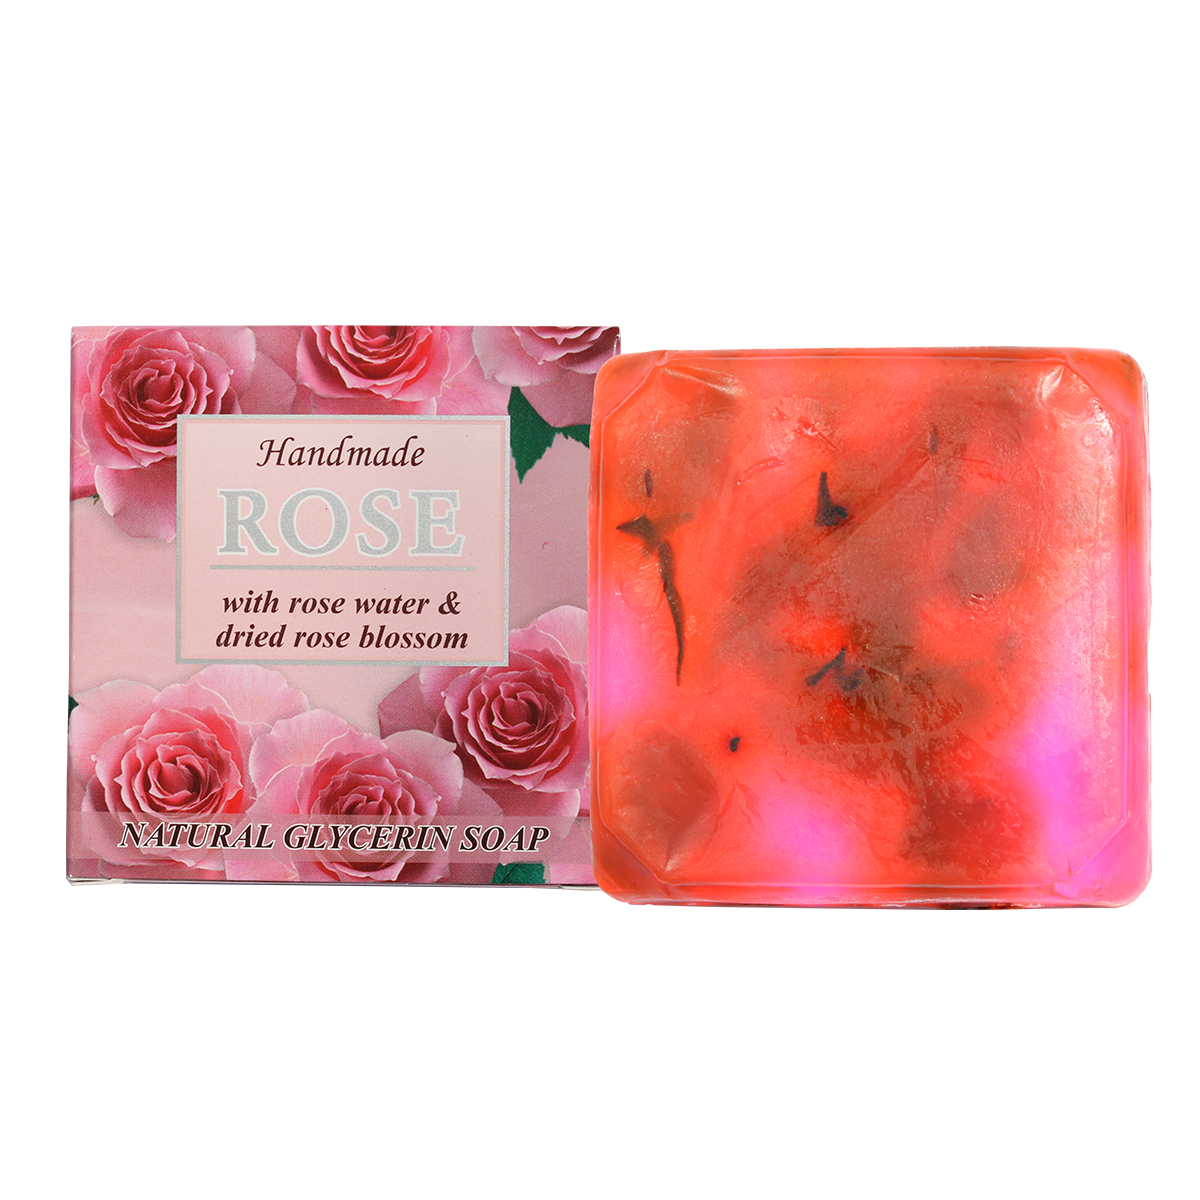 Natural Glycerine soap